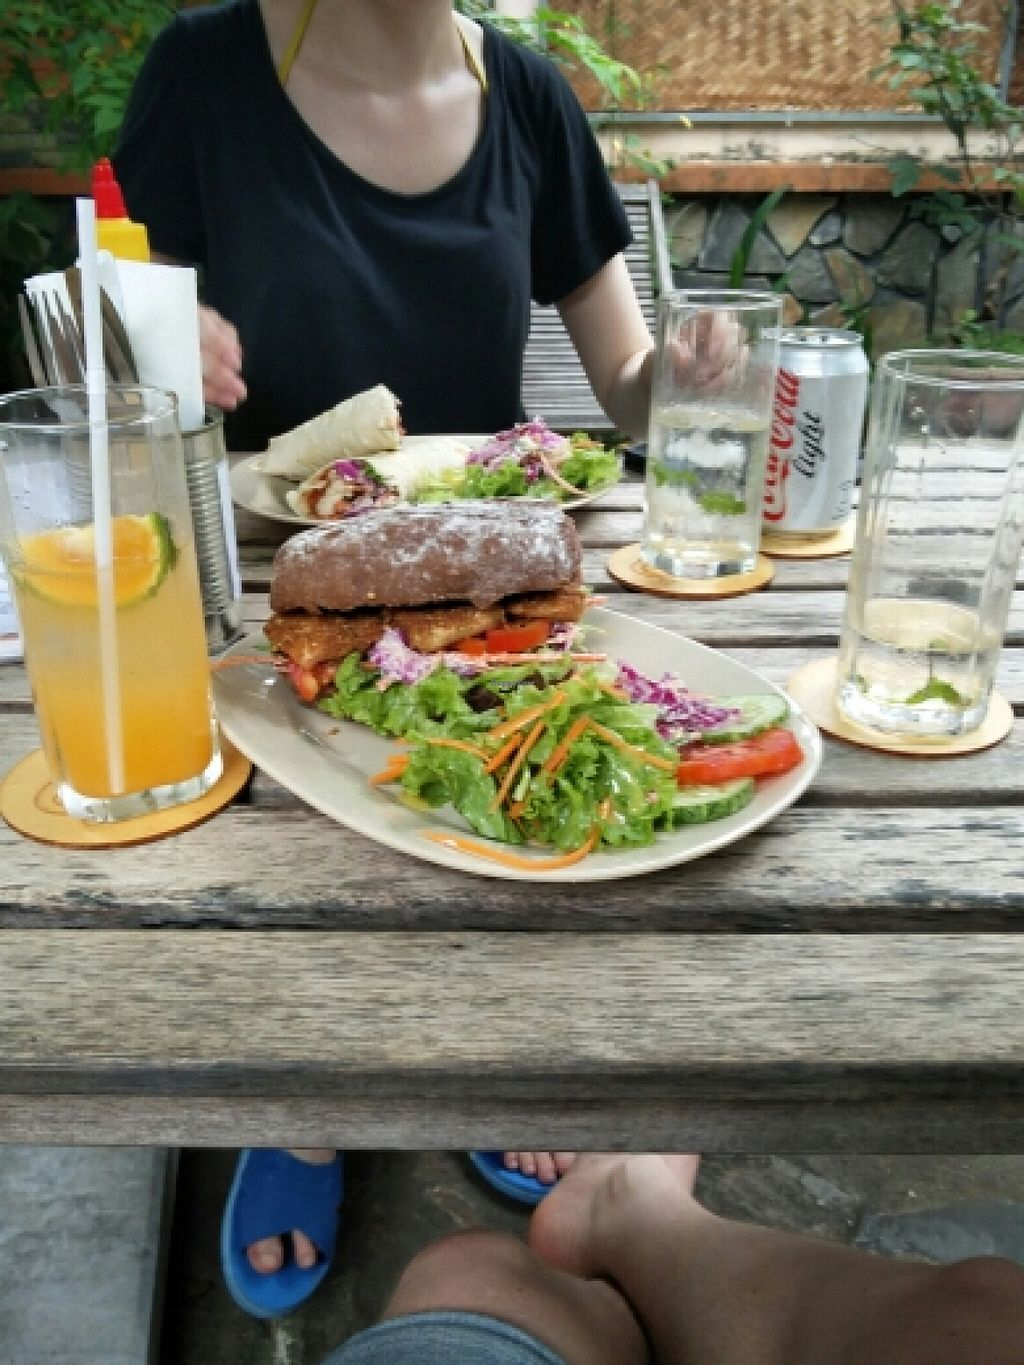 "Photo of Jack's Cat Cafe  by <a href=""/members/profile/Hippiepirate"">Hippiepirate</a> <br/>crispy tofu sandwich and wrap.  with vegan coleslaw <br/> July 5, 2016  - <a href='/contact/abuse/image/72185/157871'>Report</a>"